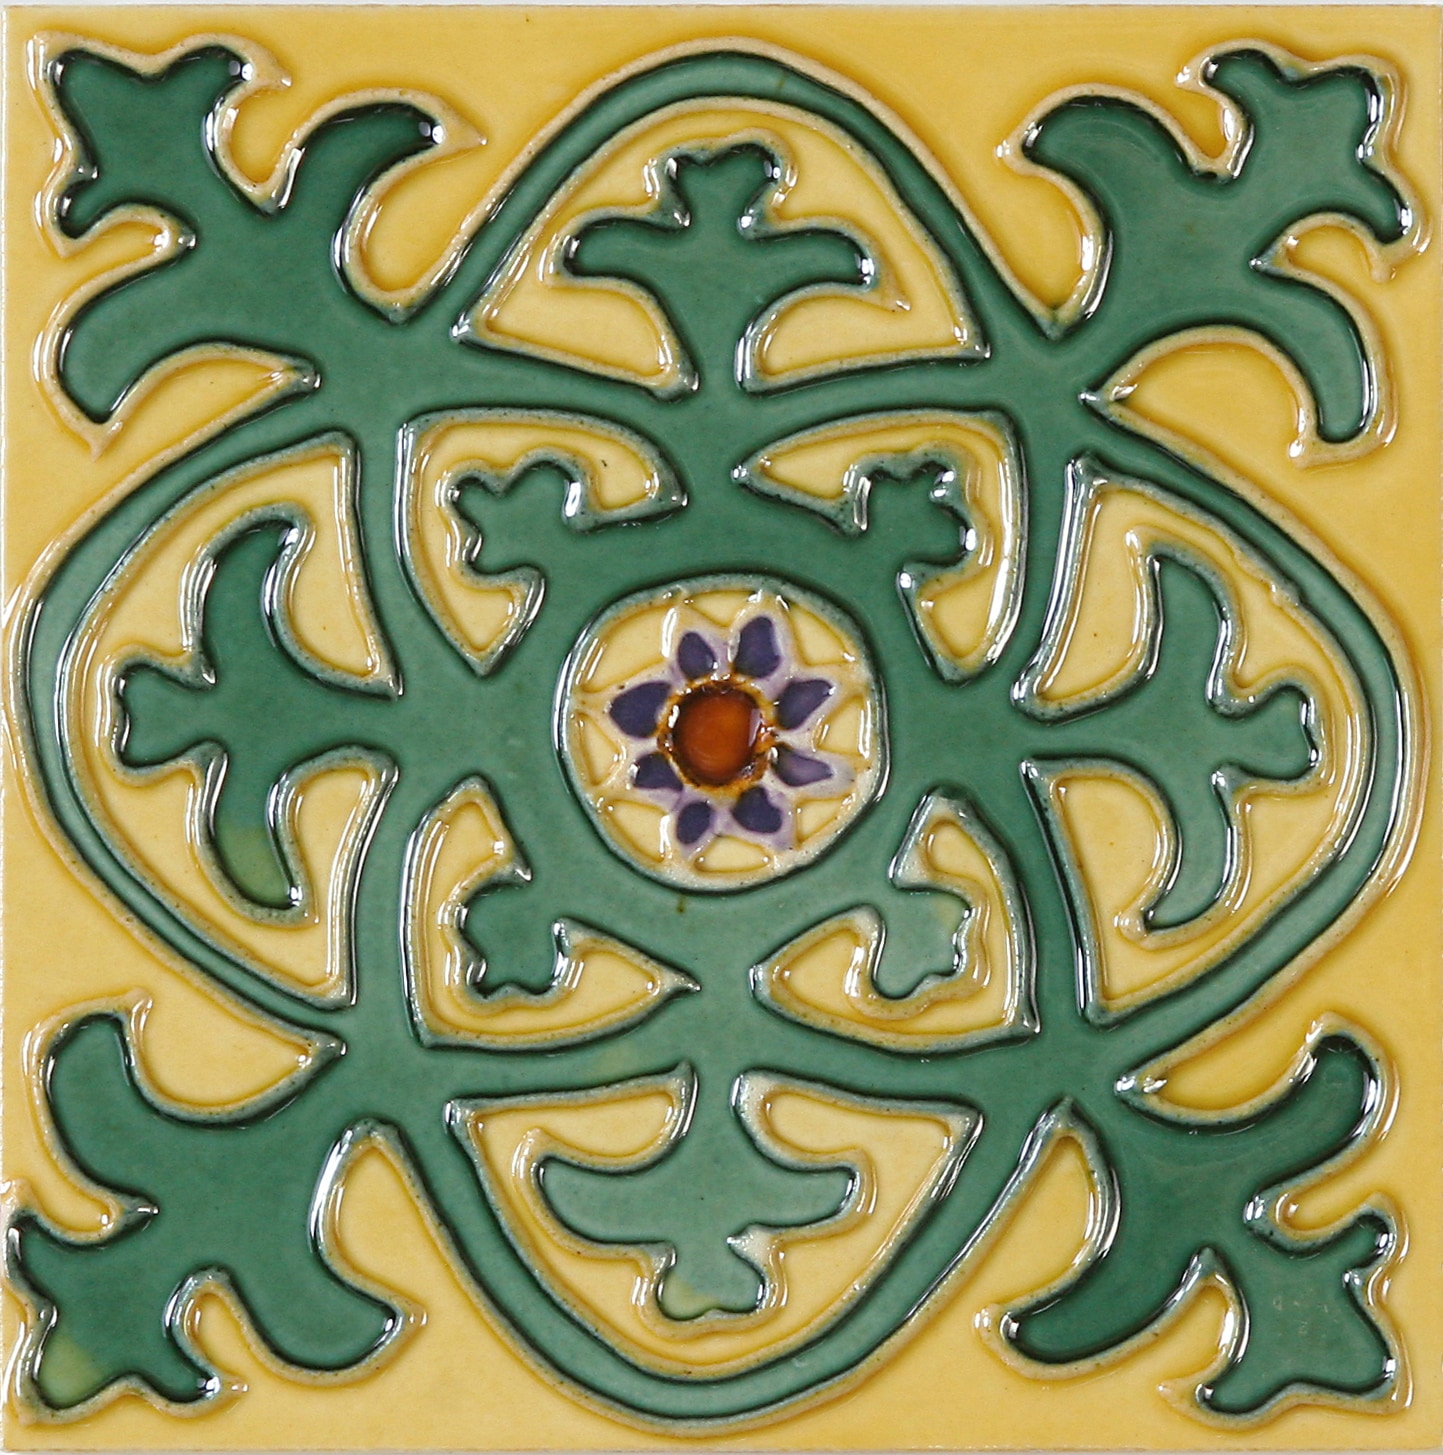 Hand-Painted Ceramic Glazed Wall Tile in Cosmo Hand-Painted Ceramic Glazed Wall Tile in Cosmo 0